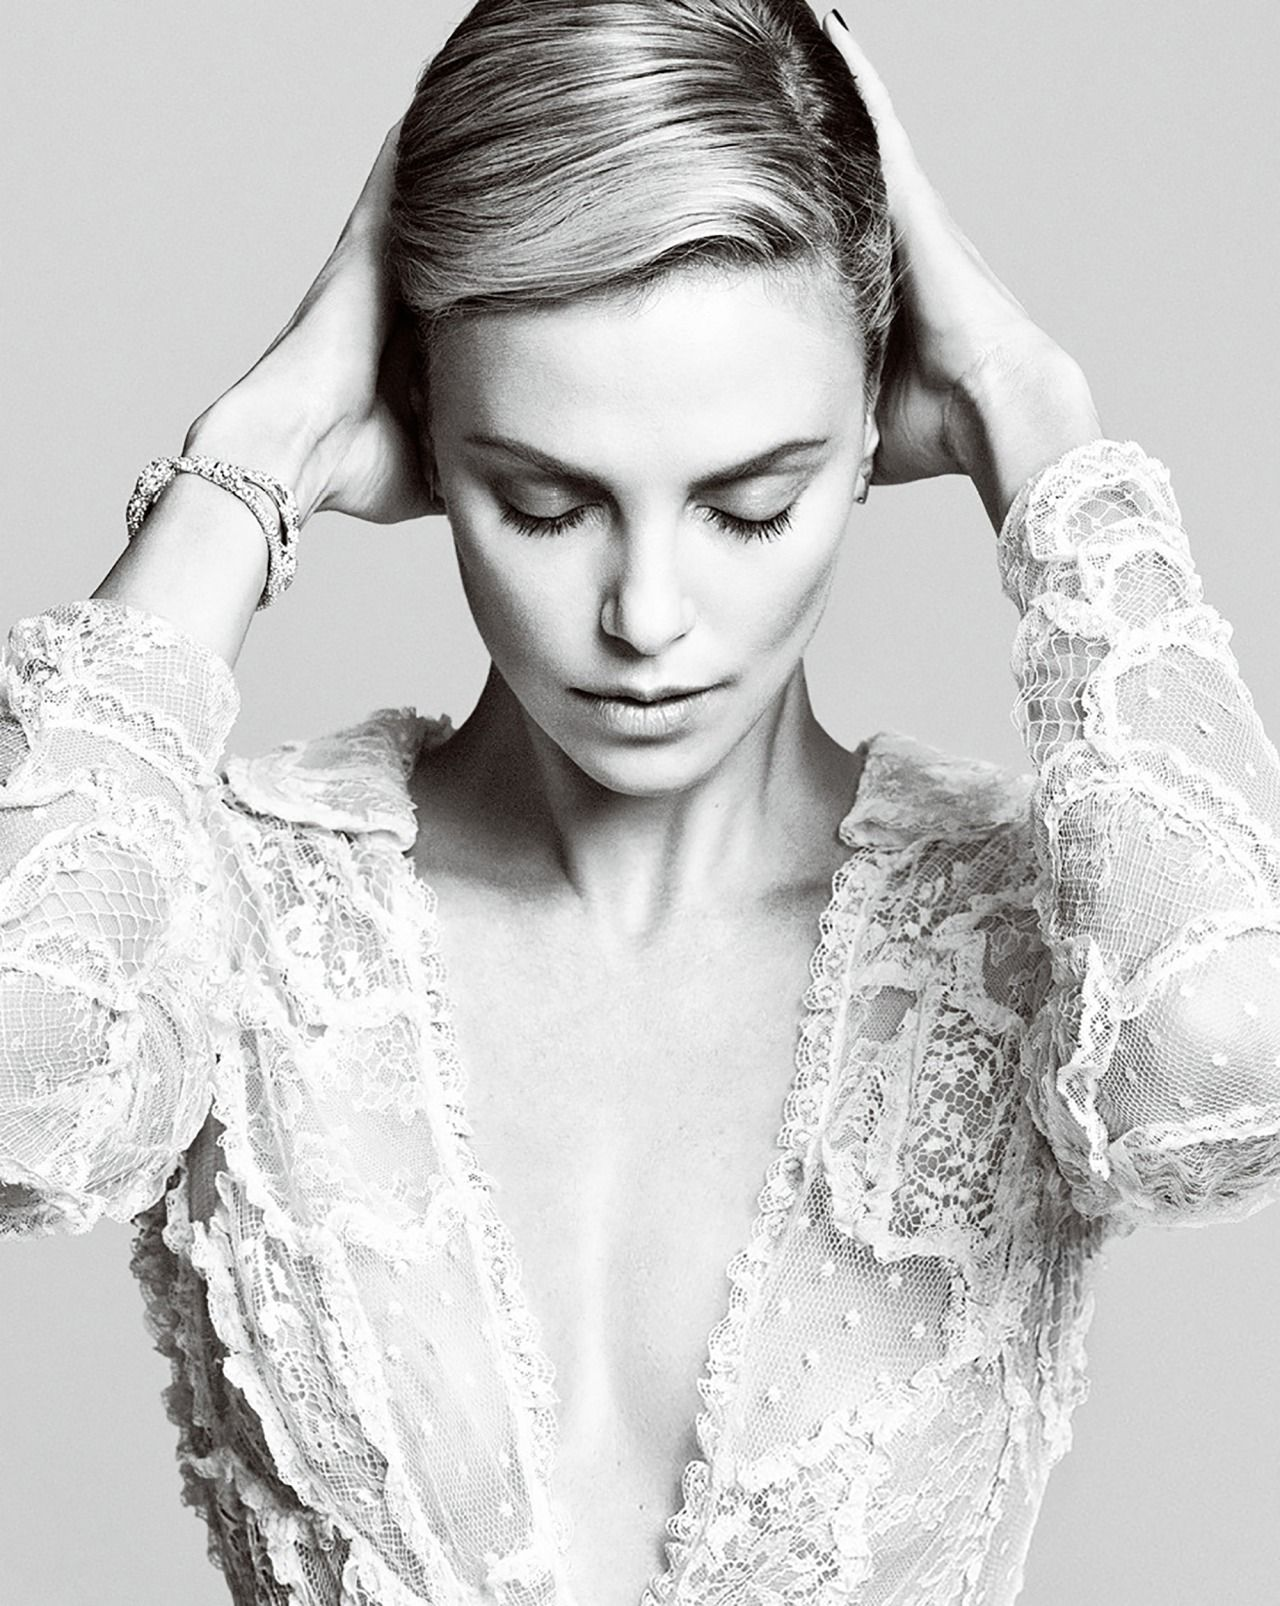 Theron charlize harpers bazaar october forecasting to wear for spring in 2019